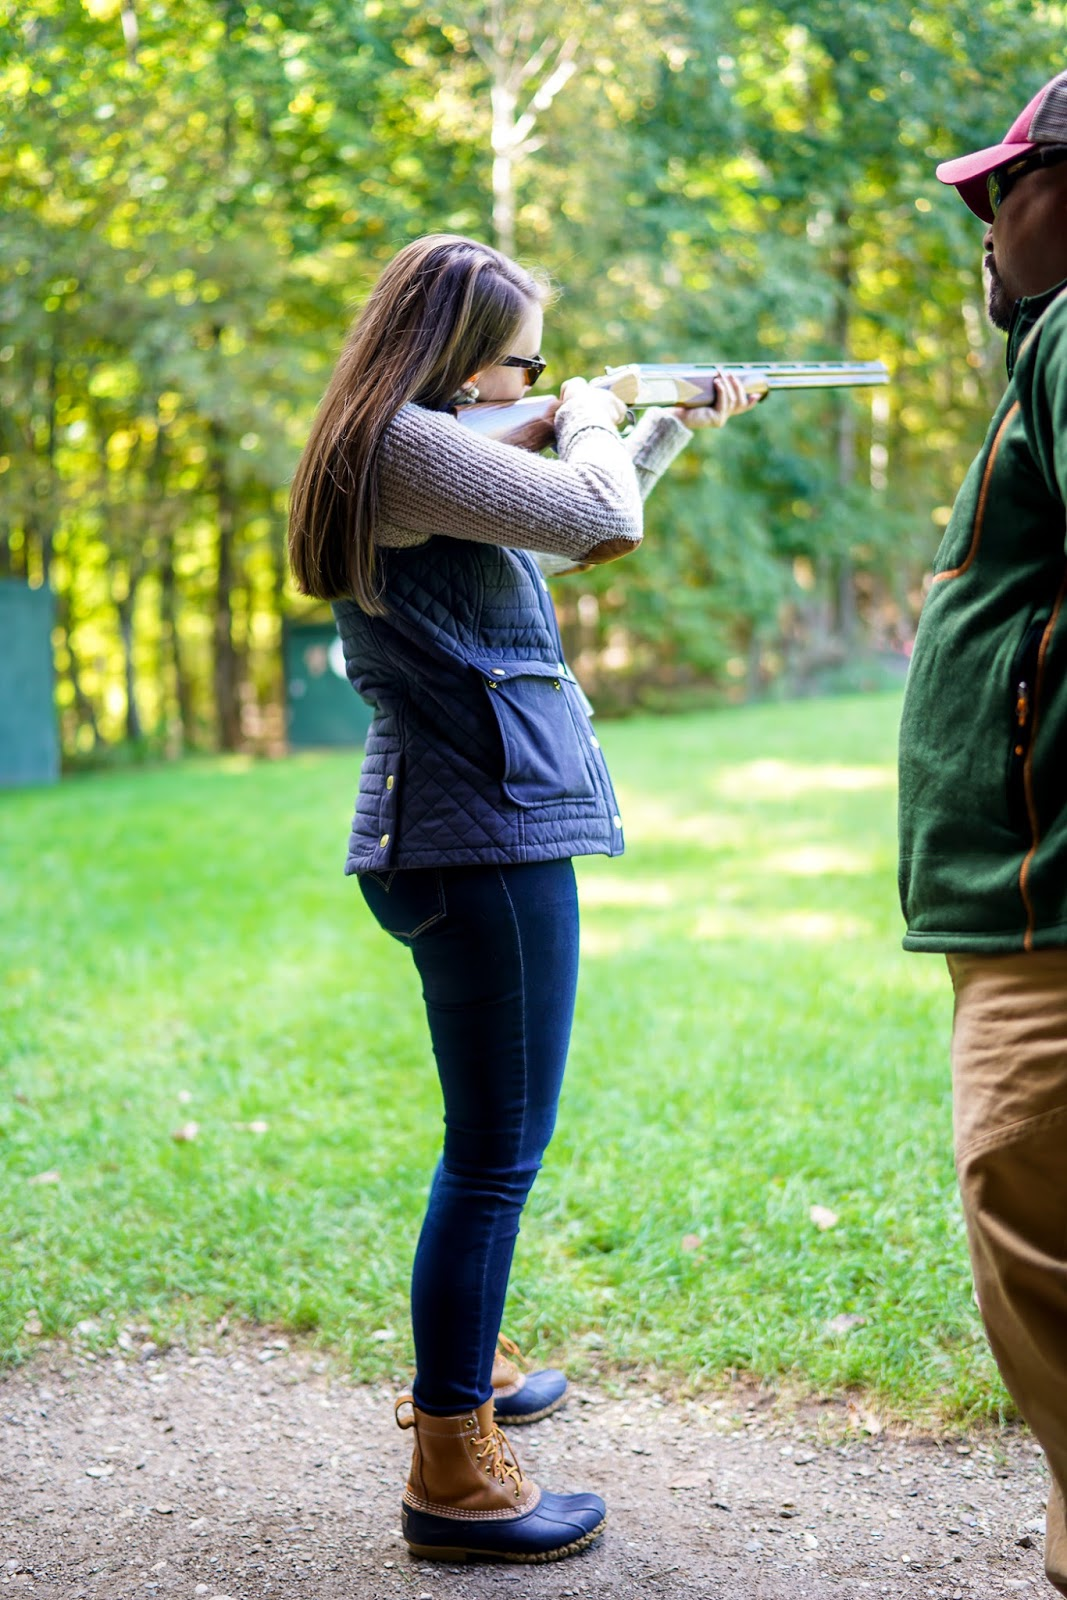 Orvis Shooting School New York City Fashion And Lifestyle Blog Covering The Bases